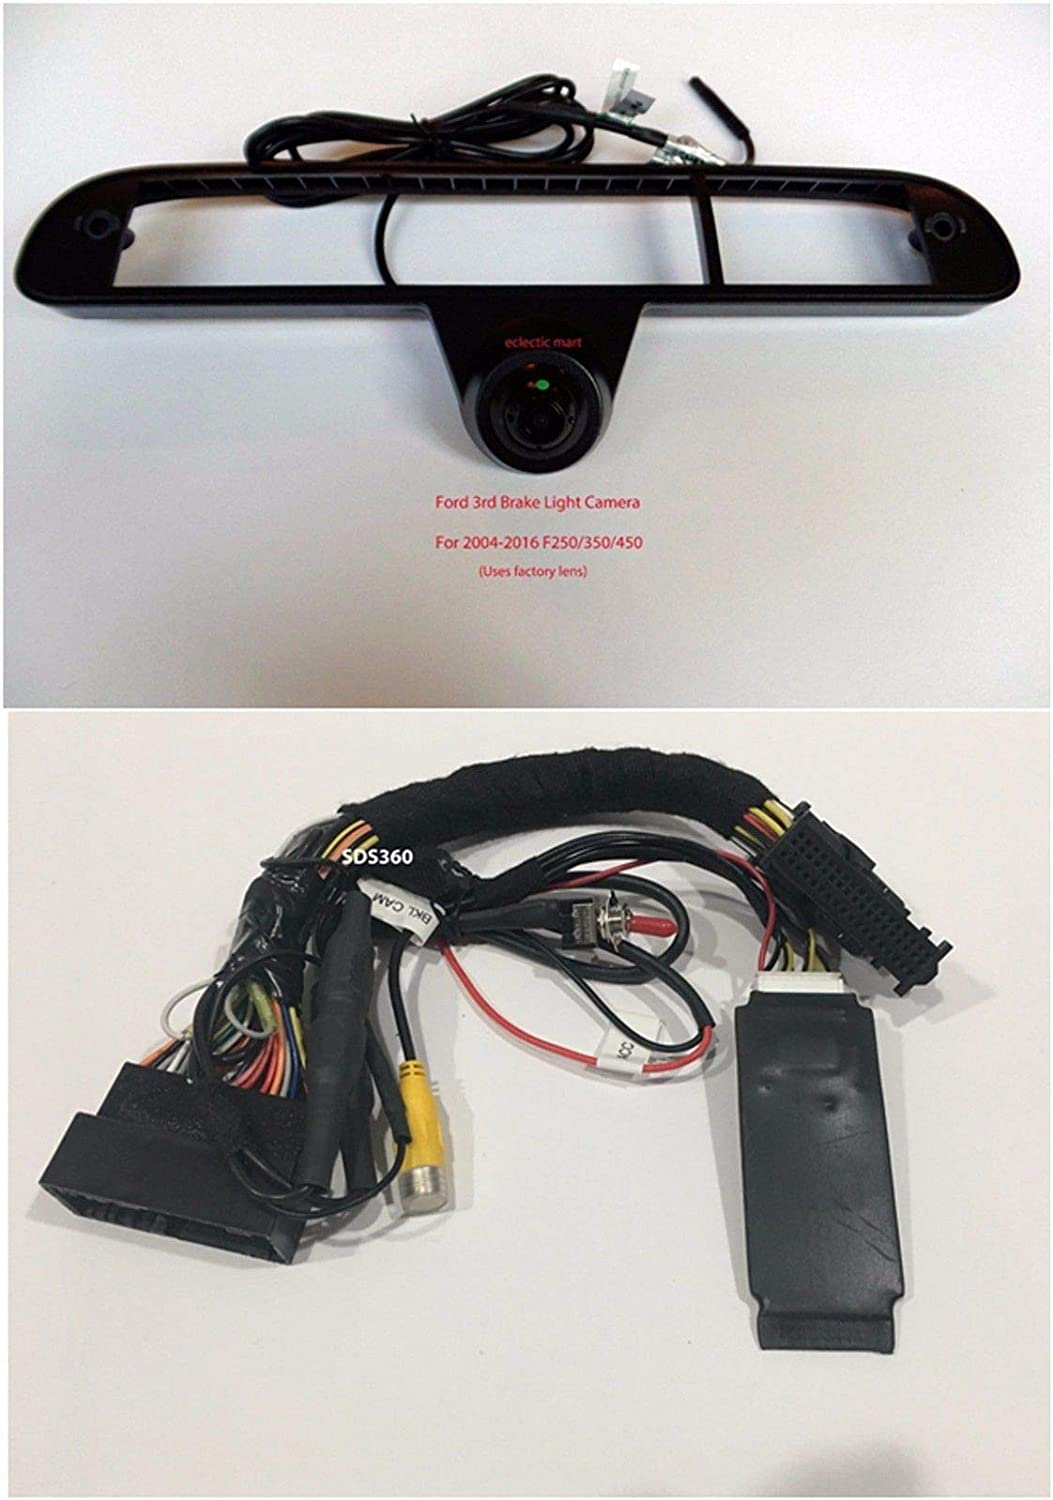 Plug /& Play T Harness Switcher 3rd Brake Light Cargo Camera to Factory Radio 1999-2016 F250 // F350 // F450 SYNC 2 /& SYNC 3 System 8 Screen Truck Must Have a Factory Tailgate Handle Camera